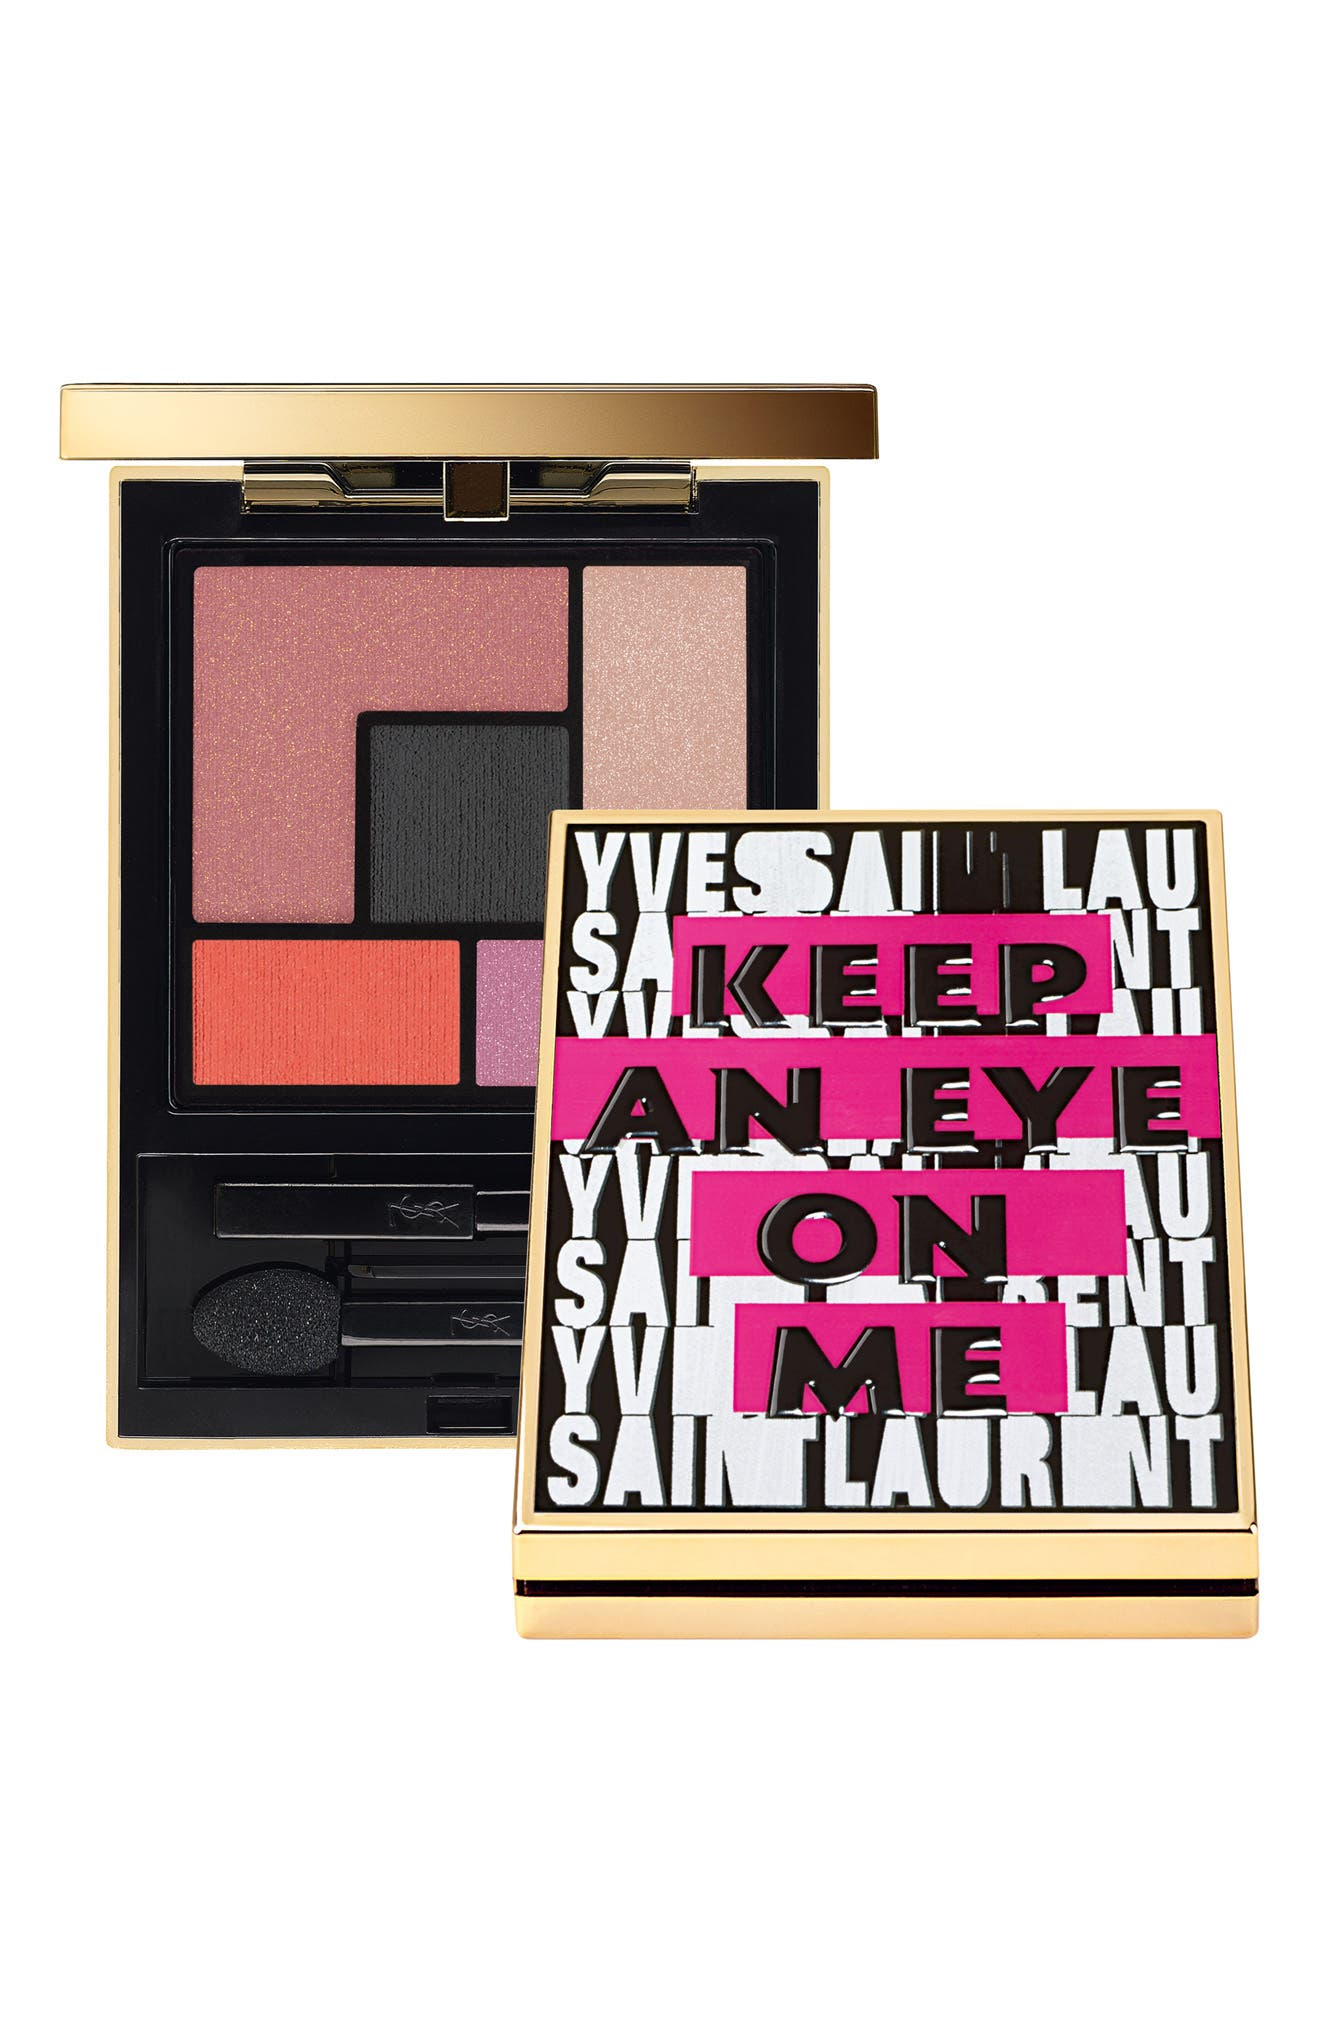 Alternate Image 1 Selected - Yves Saint Laurent The Street and I Couture Palette Collection (Limited Edition)